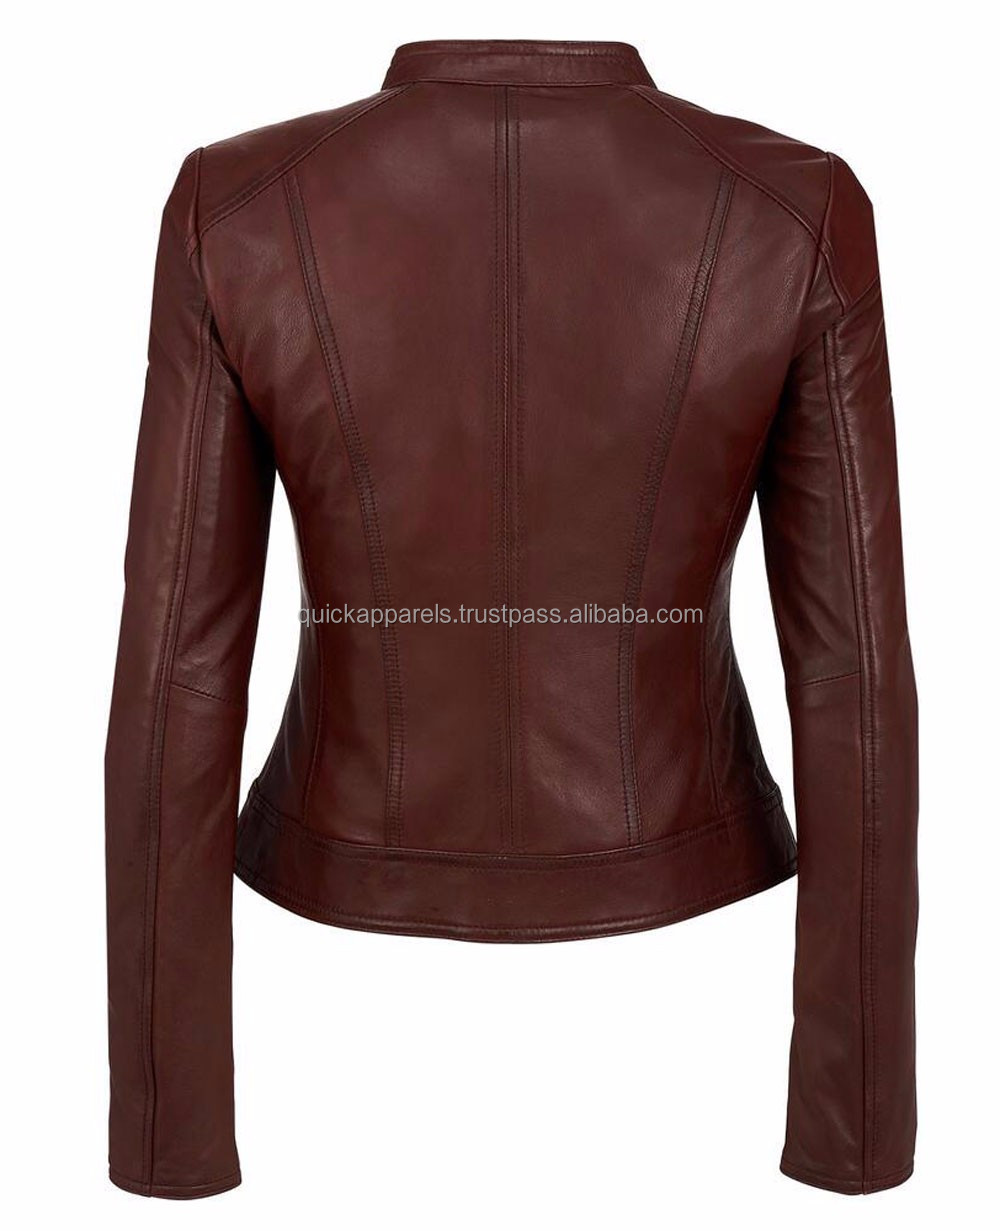 winter new design cheap black v-neck leather jacket for women